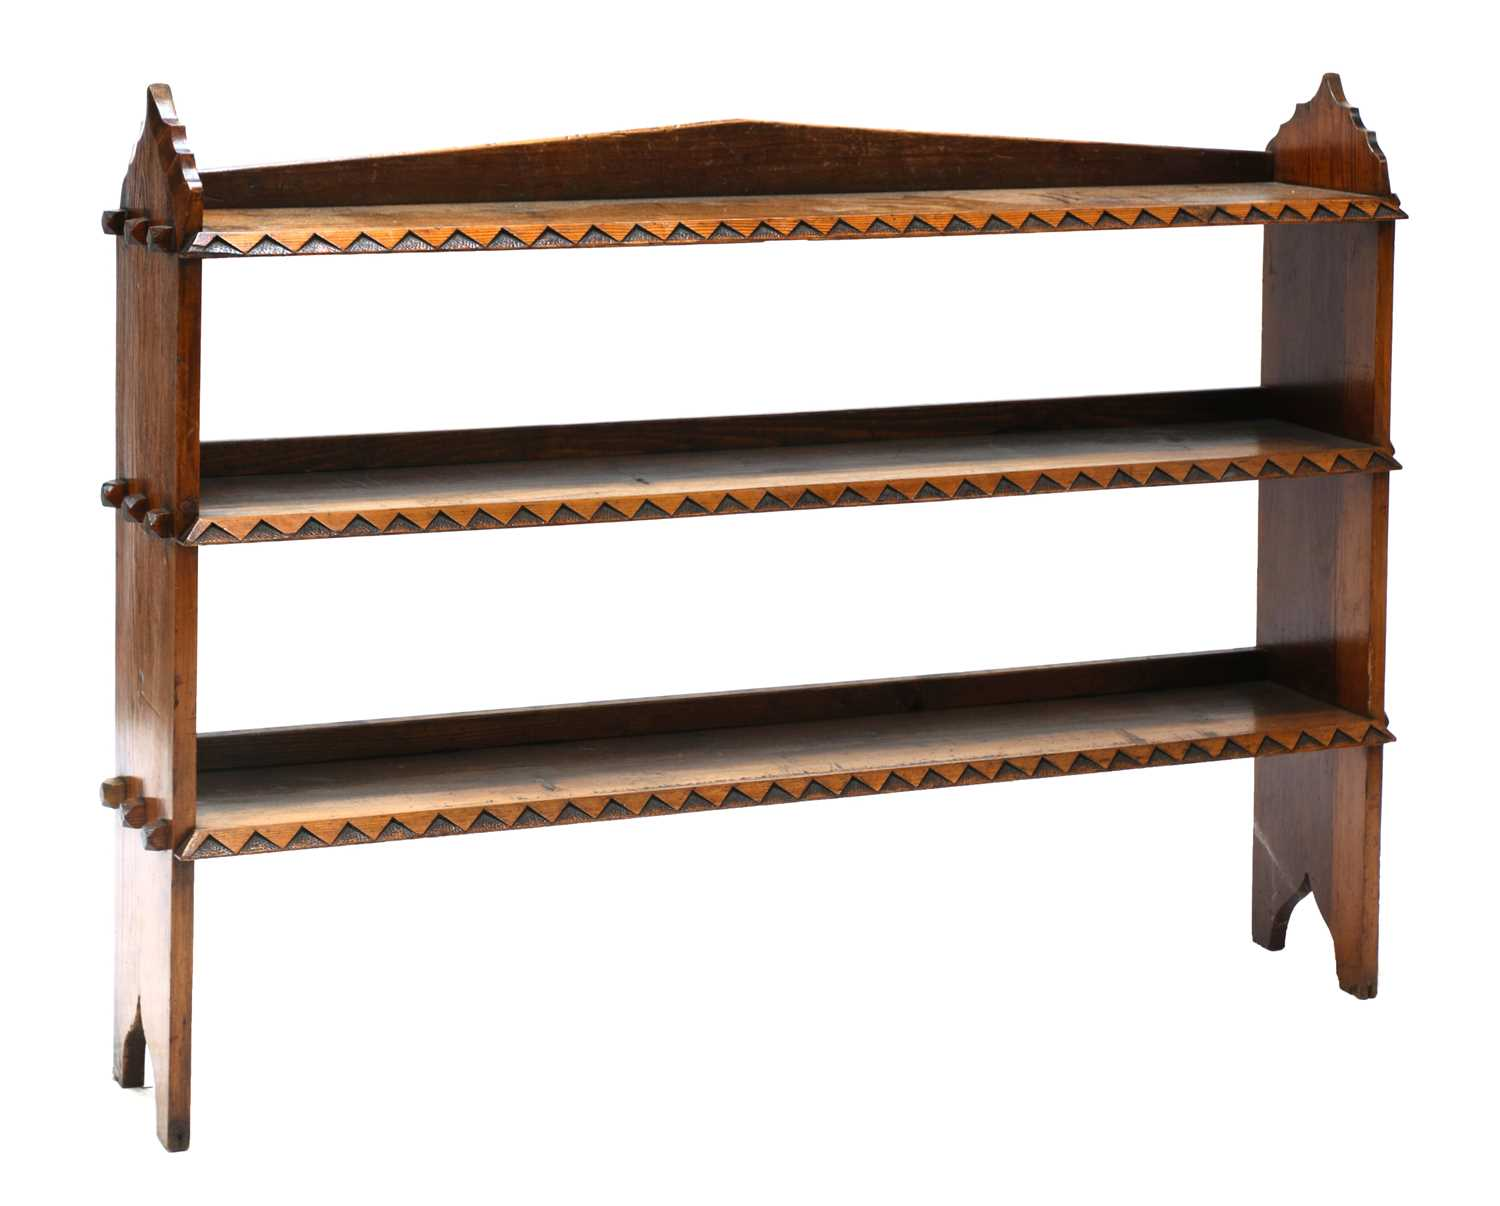 Lot 32 - A Gothic Revival pitch pine bookcase